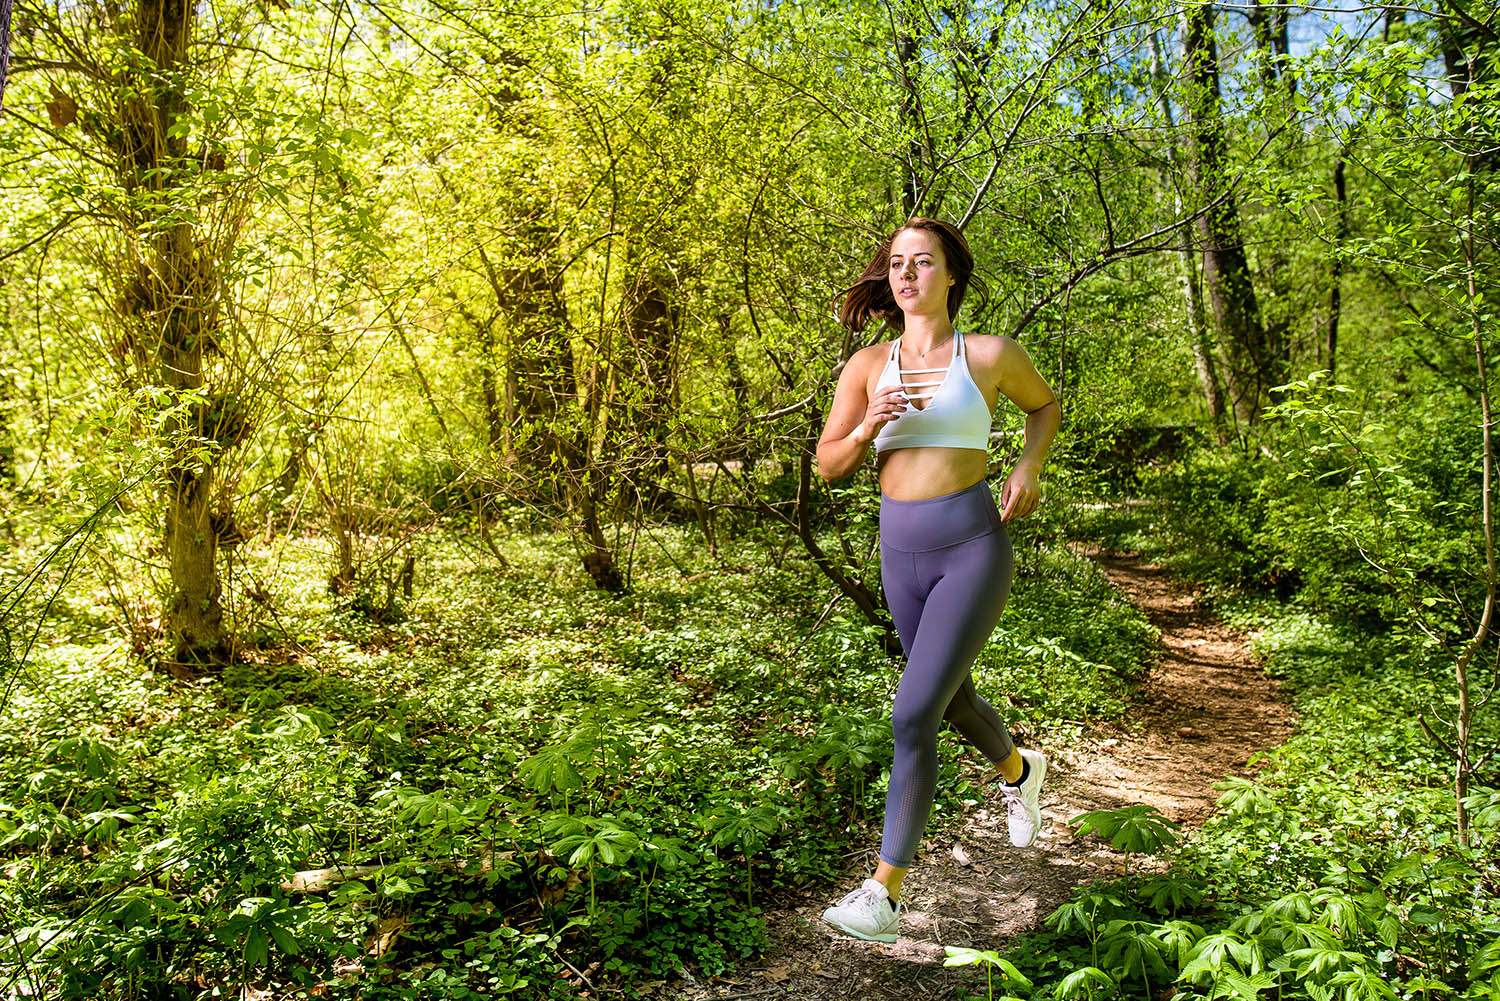 A runner jogs through the woods in this commercial photo by Joe Dantone